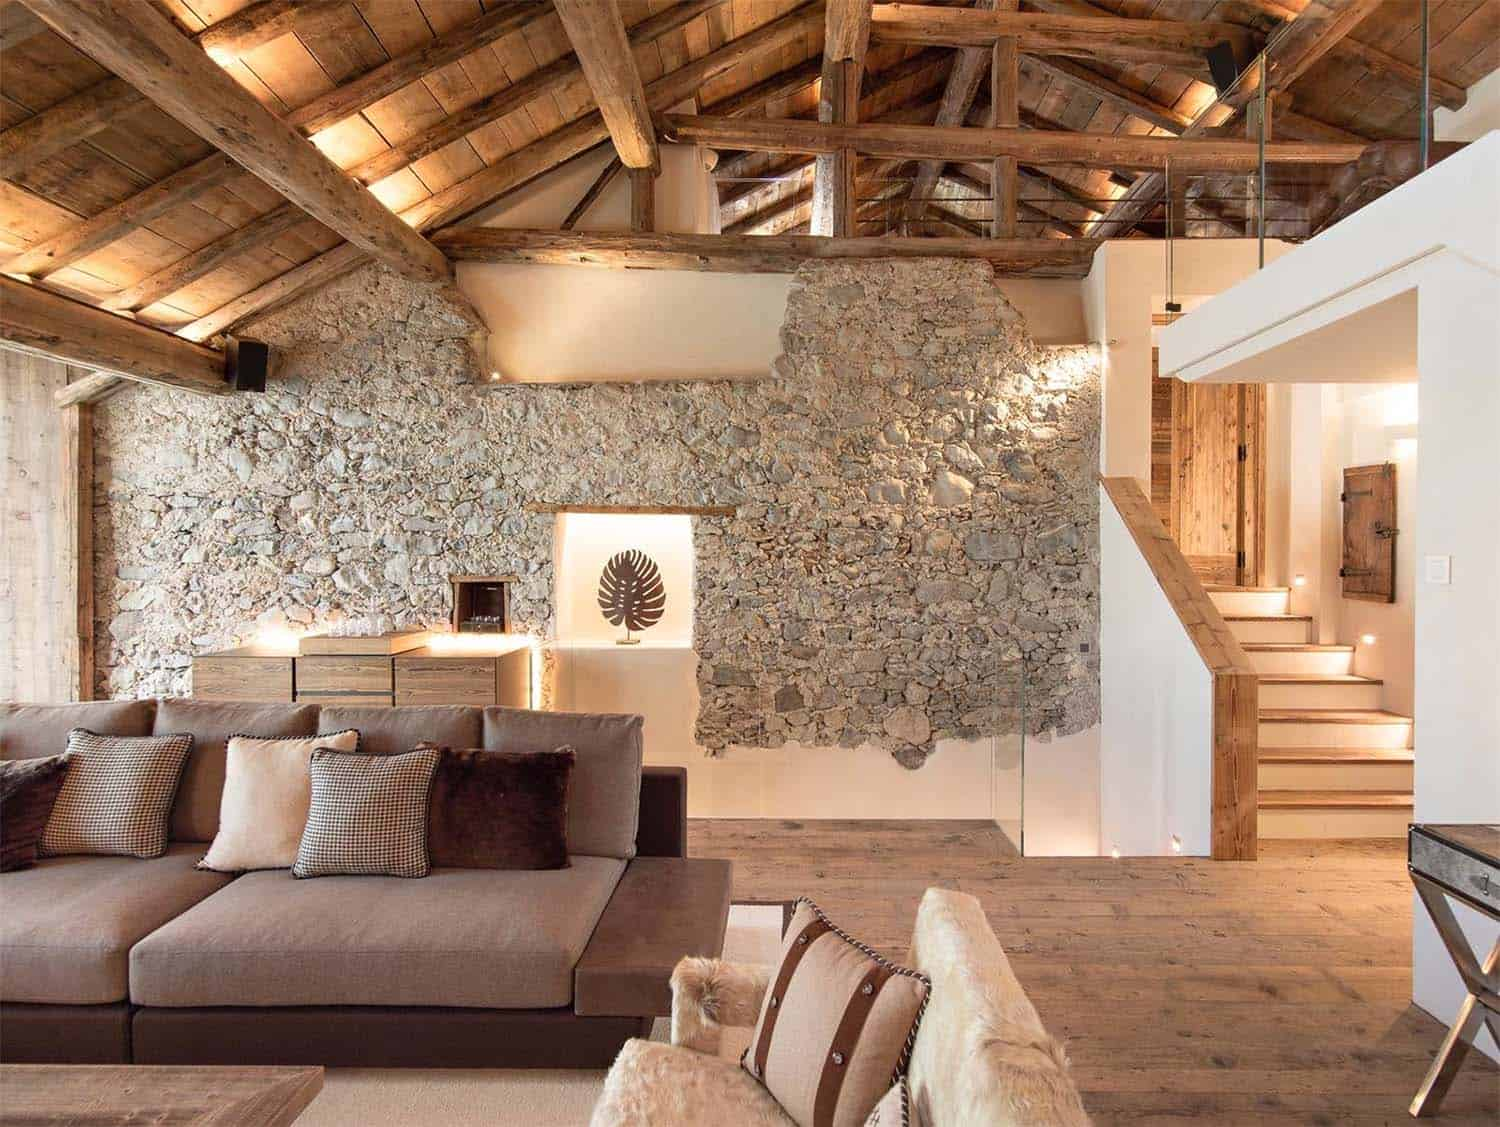 Luxury Restored In A 300 Year Old House In St Moritz